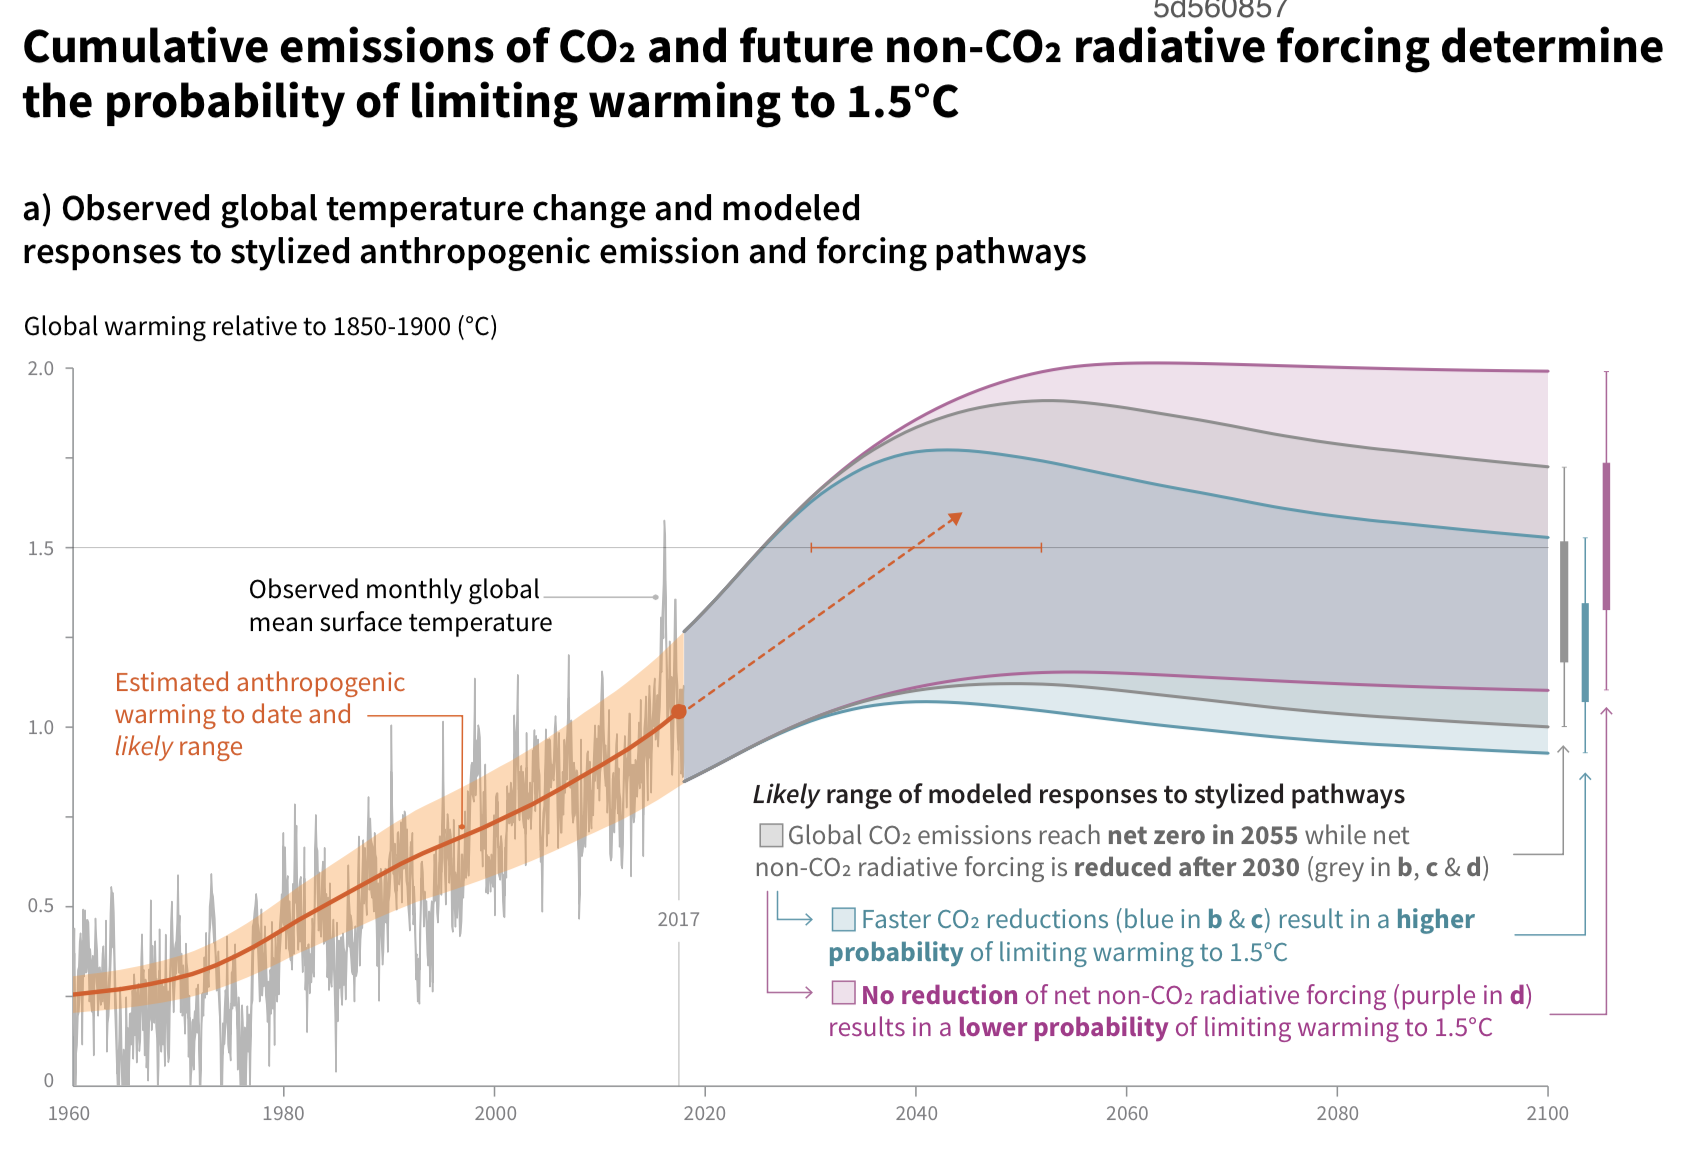 Source ipcc special report on global warming of 1.5 deg c